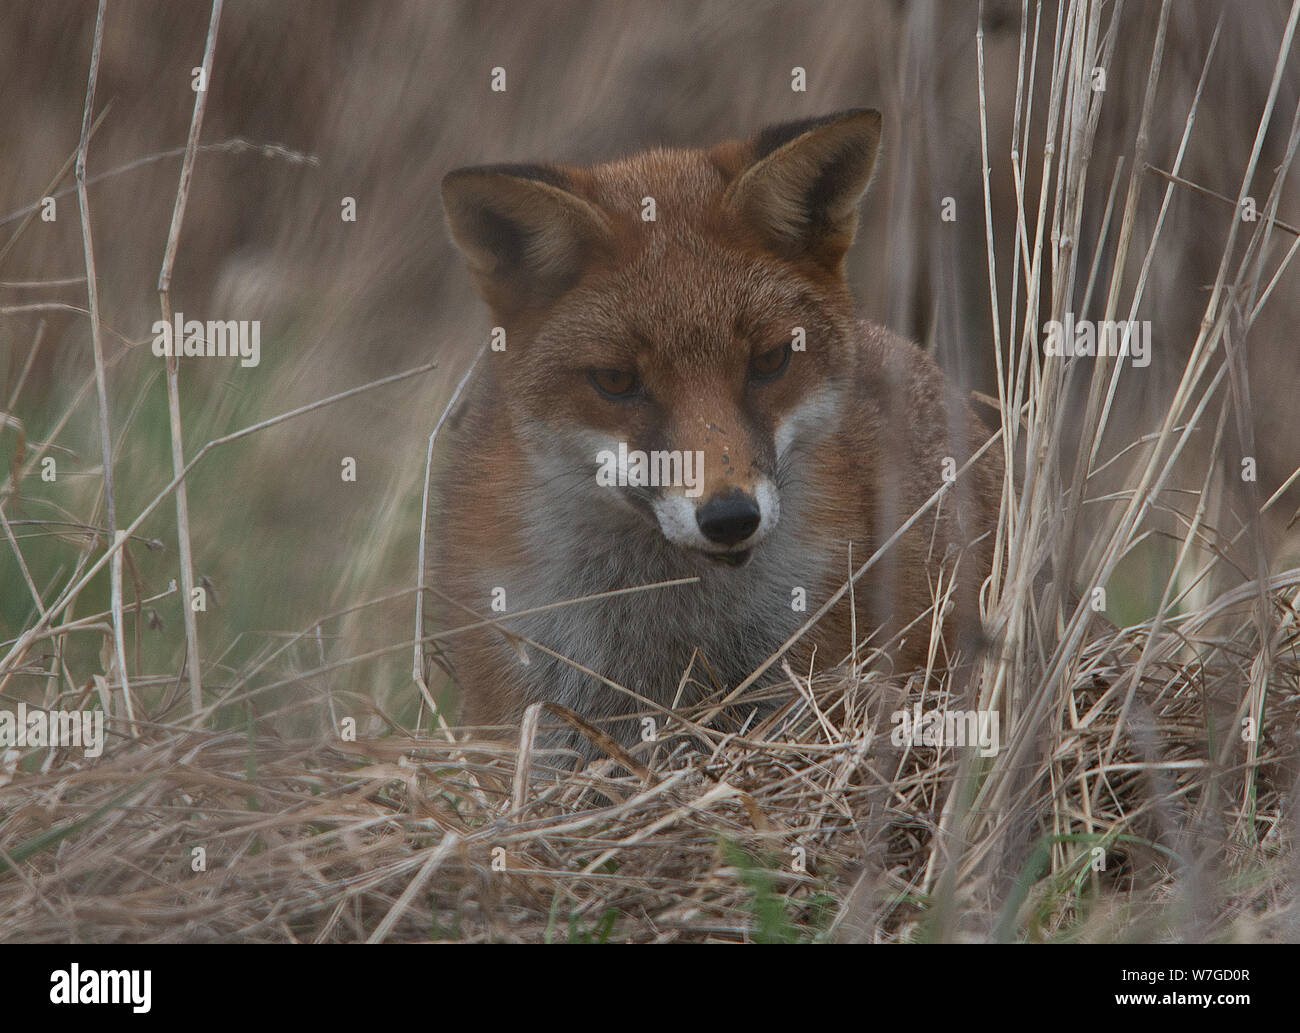 Fox out hunting seen in close up of it's head with ears raised and eyes focused on prey in undergrowth Stock Photo